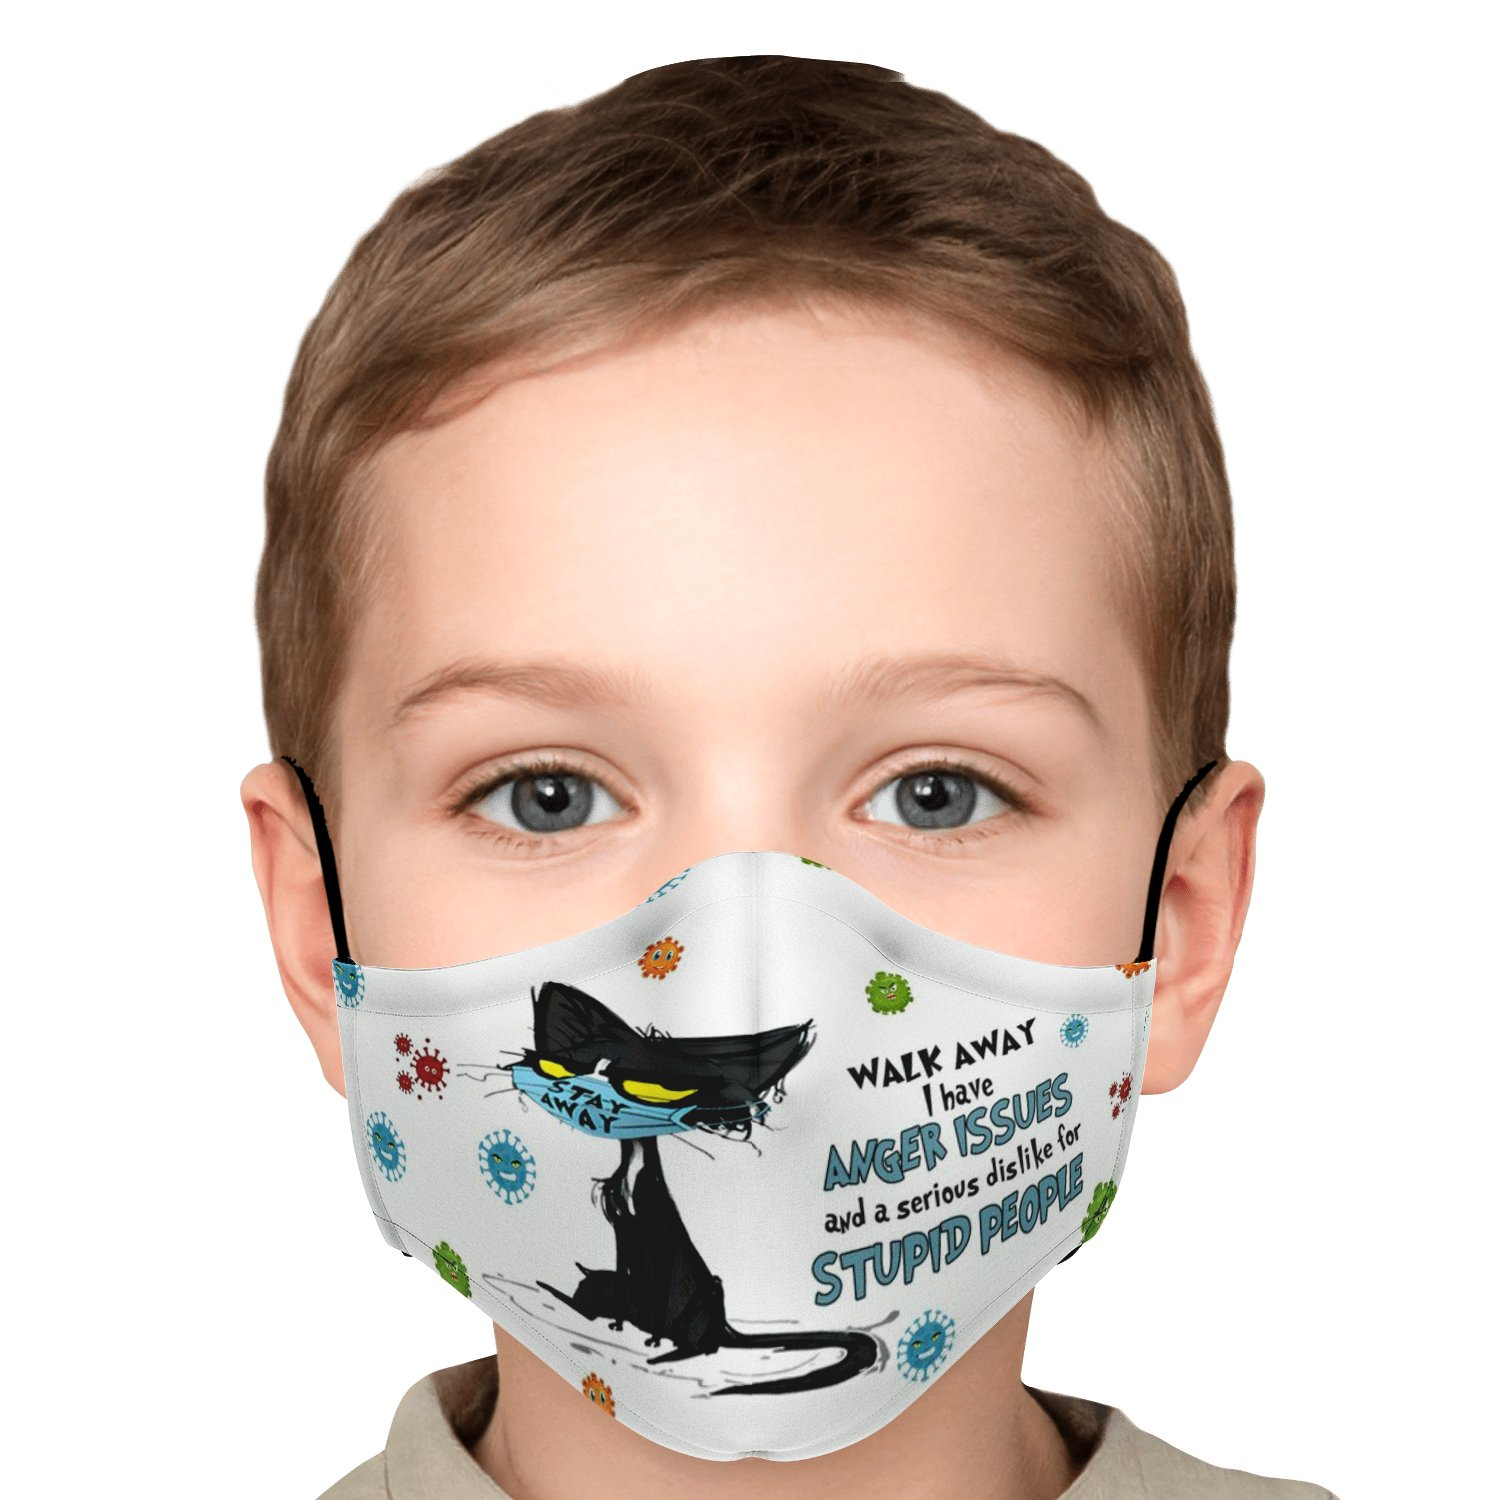 Walk Away Stupid People Black Cat Face Mask 6